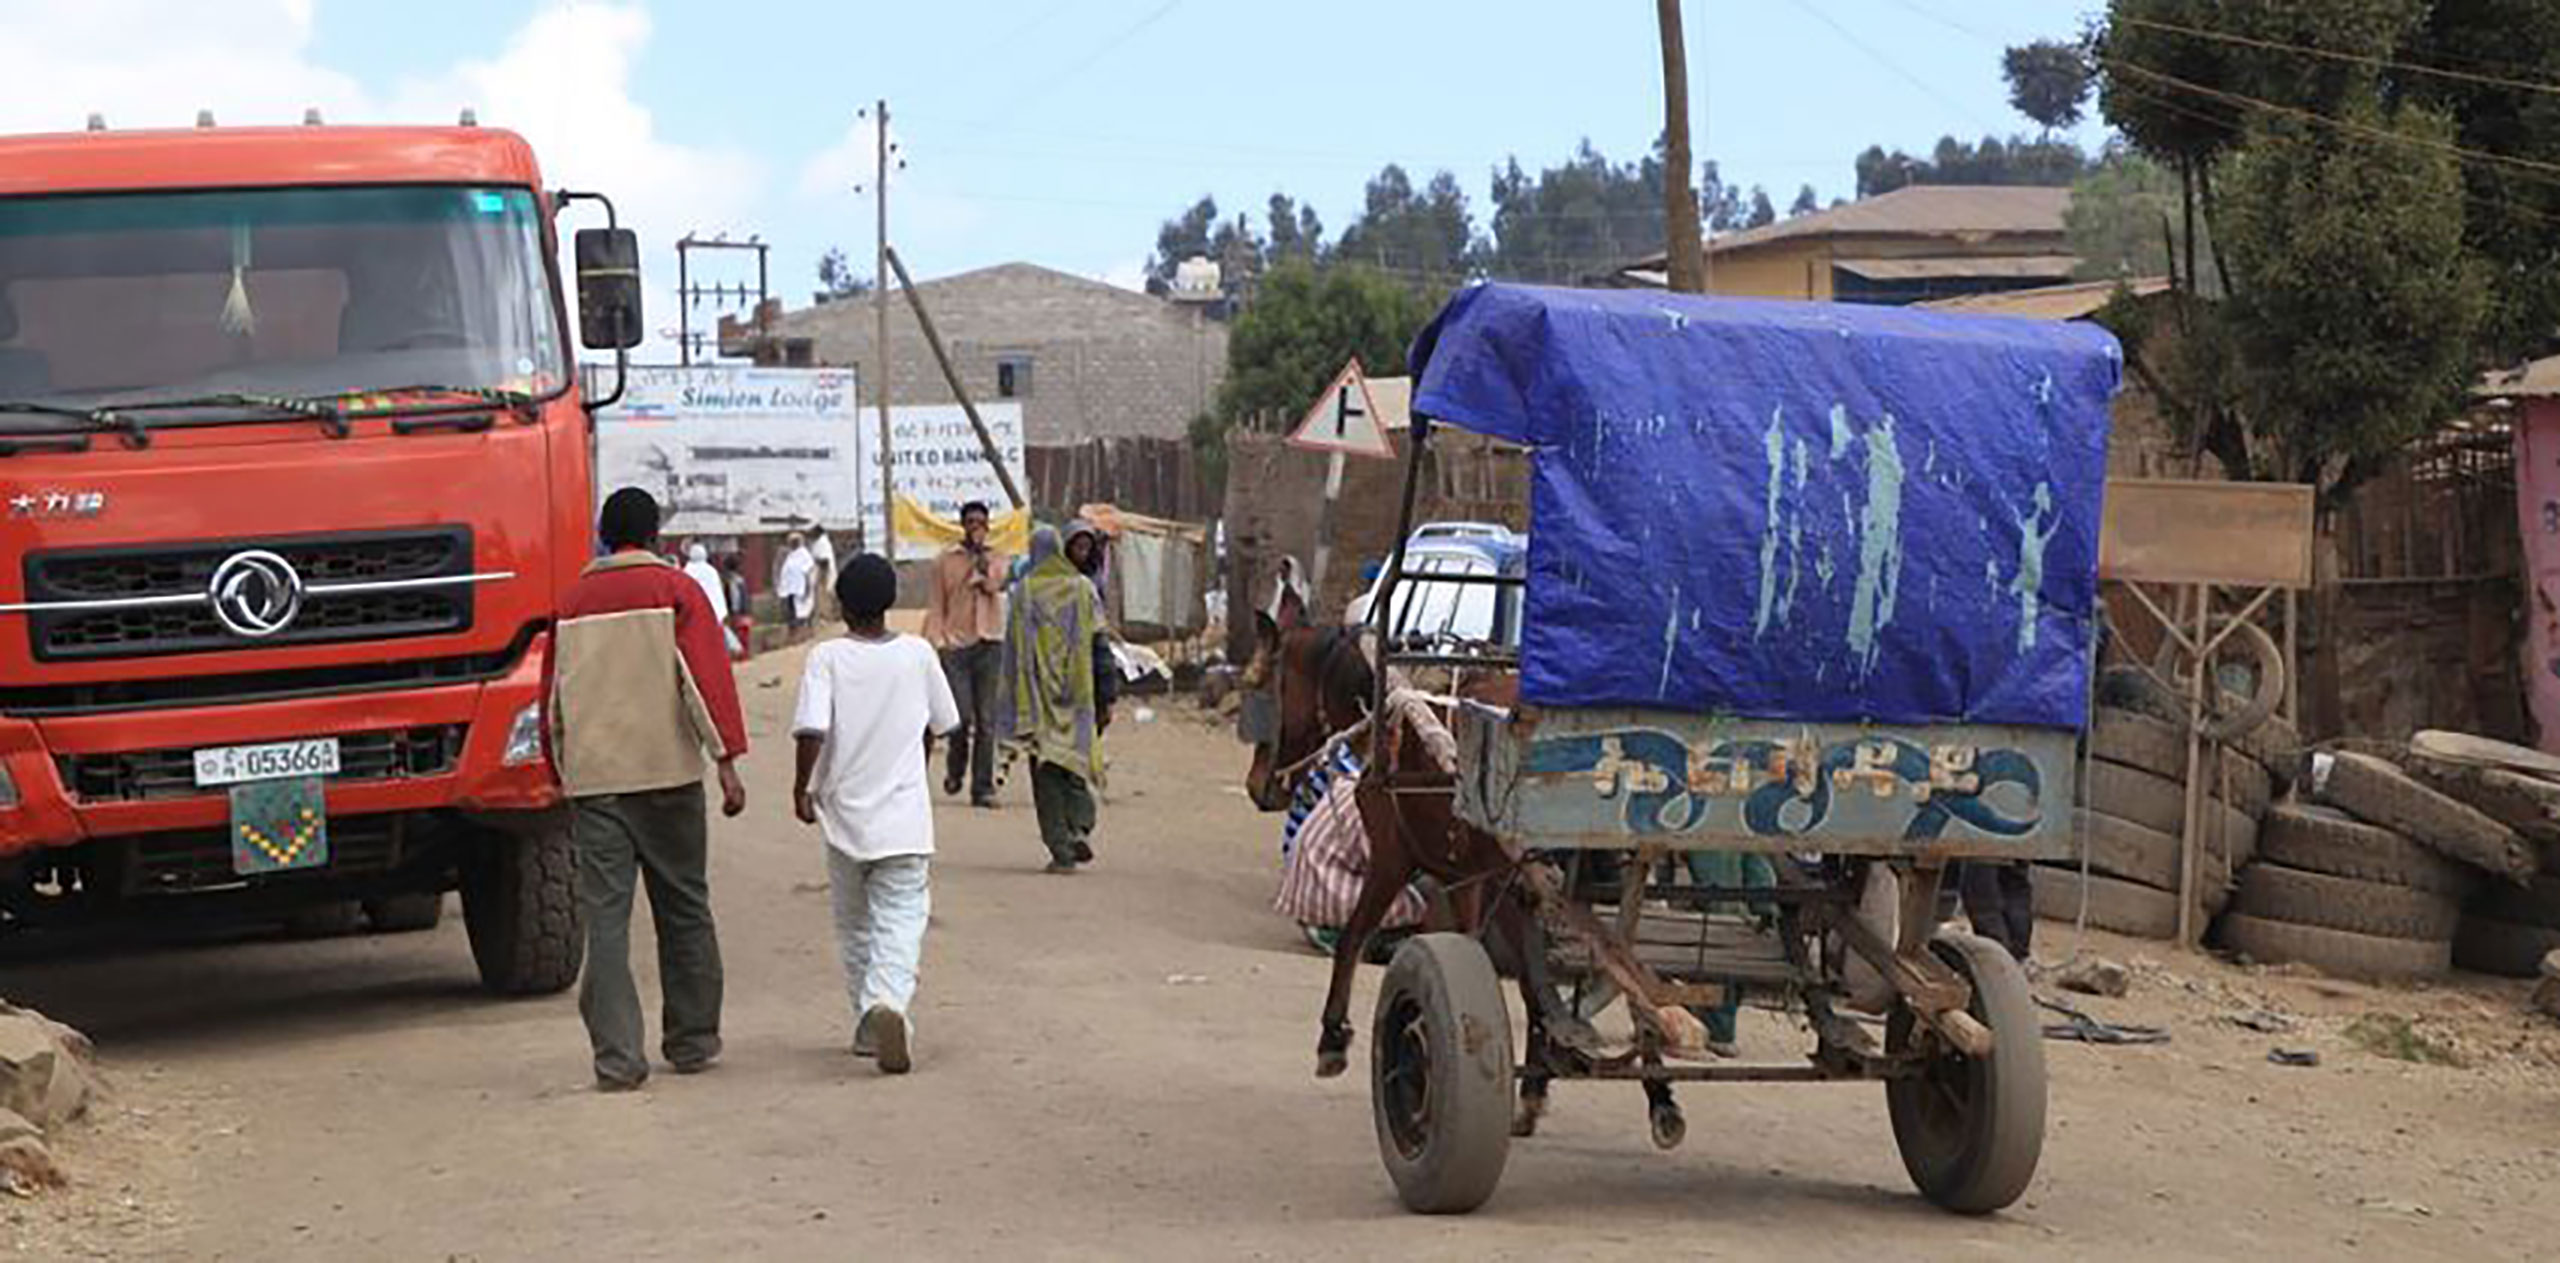 Ethiopians walking around at a truck stop in Debark, Ethiopia. A large red semi dwarfs a nearby horse-drawn carriage